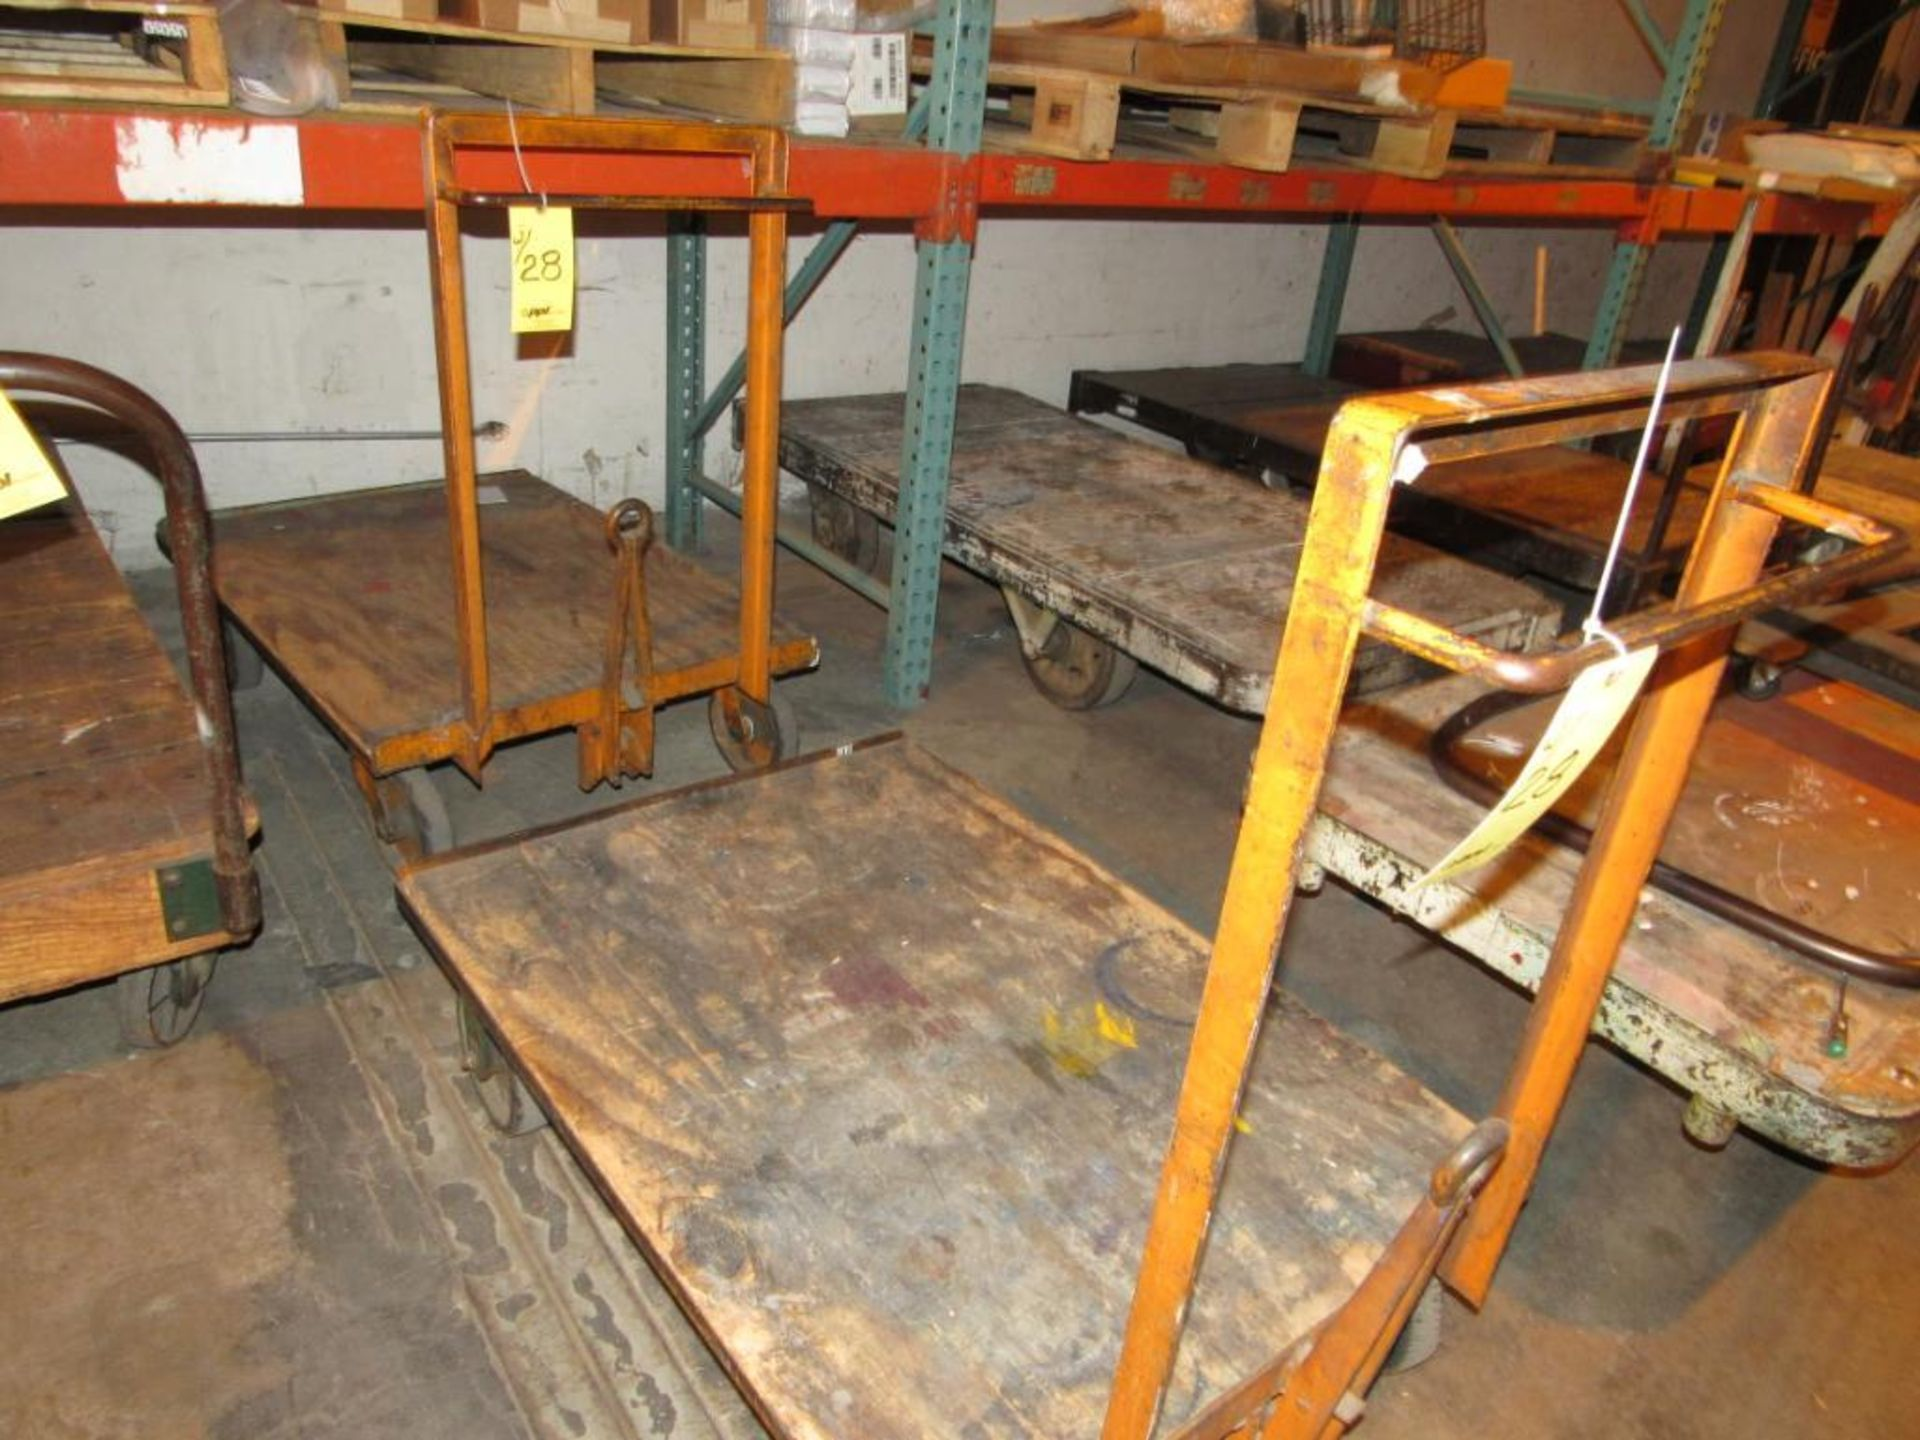 LOT: (4) Assorted 4-Wheel Wood Deck Shop Carts (2 - 30 in. x 42 in., 2 - 30 in. x 72 in.) - Image 2 of 2